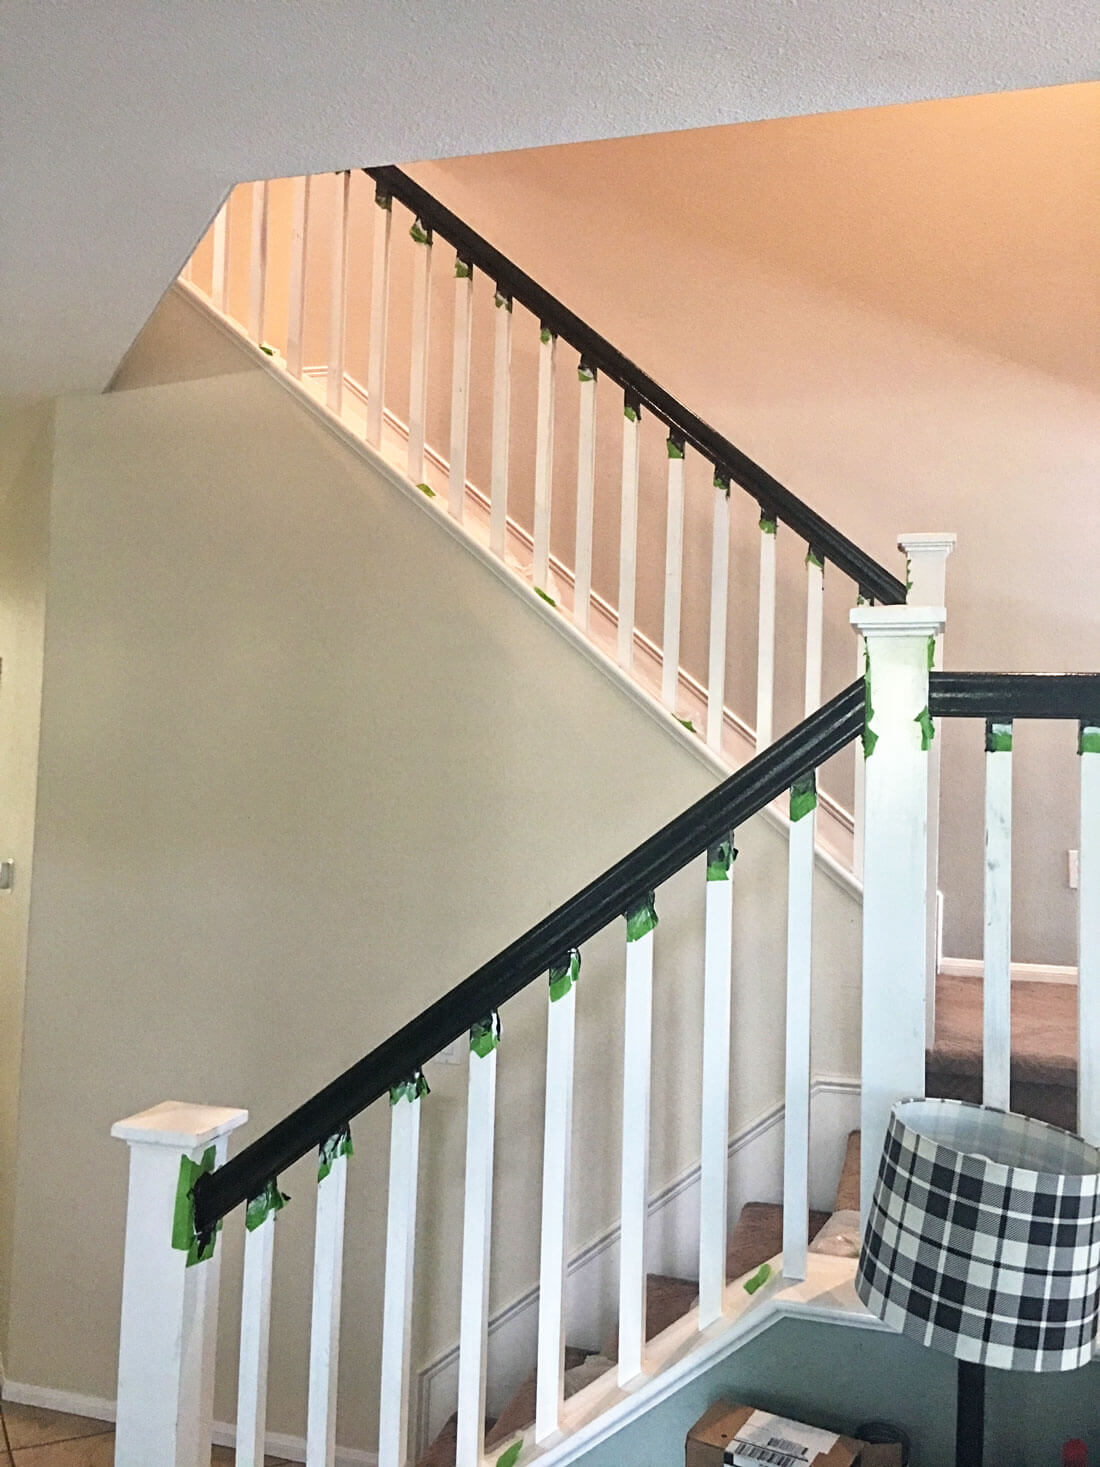 How To Paint Your Stair Railings And Banister Painting The Spindles